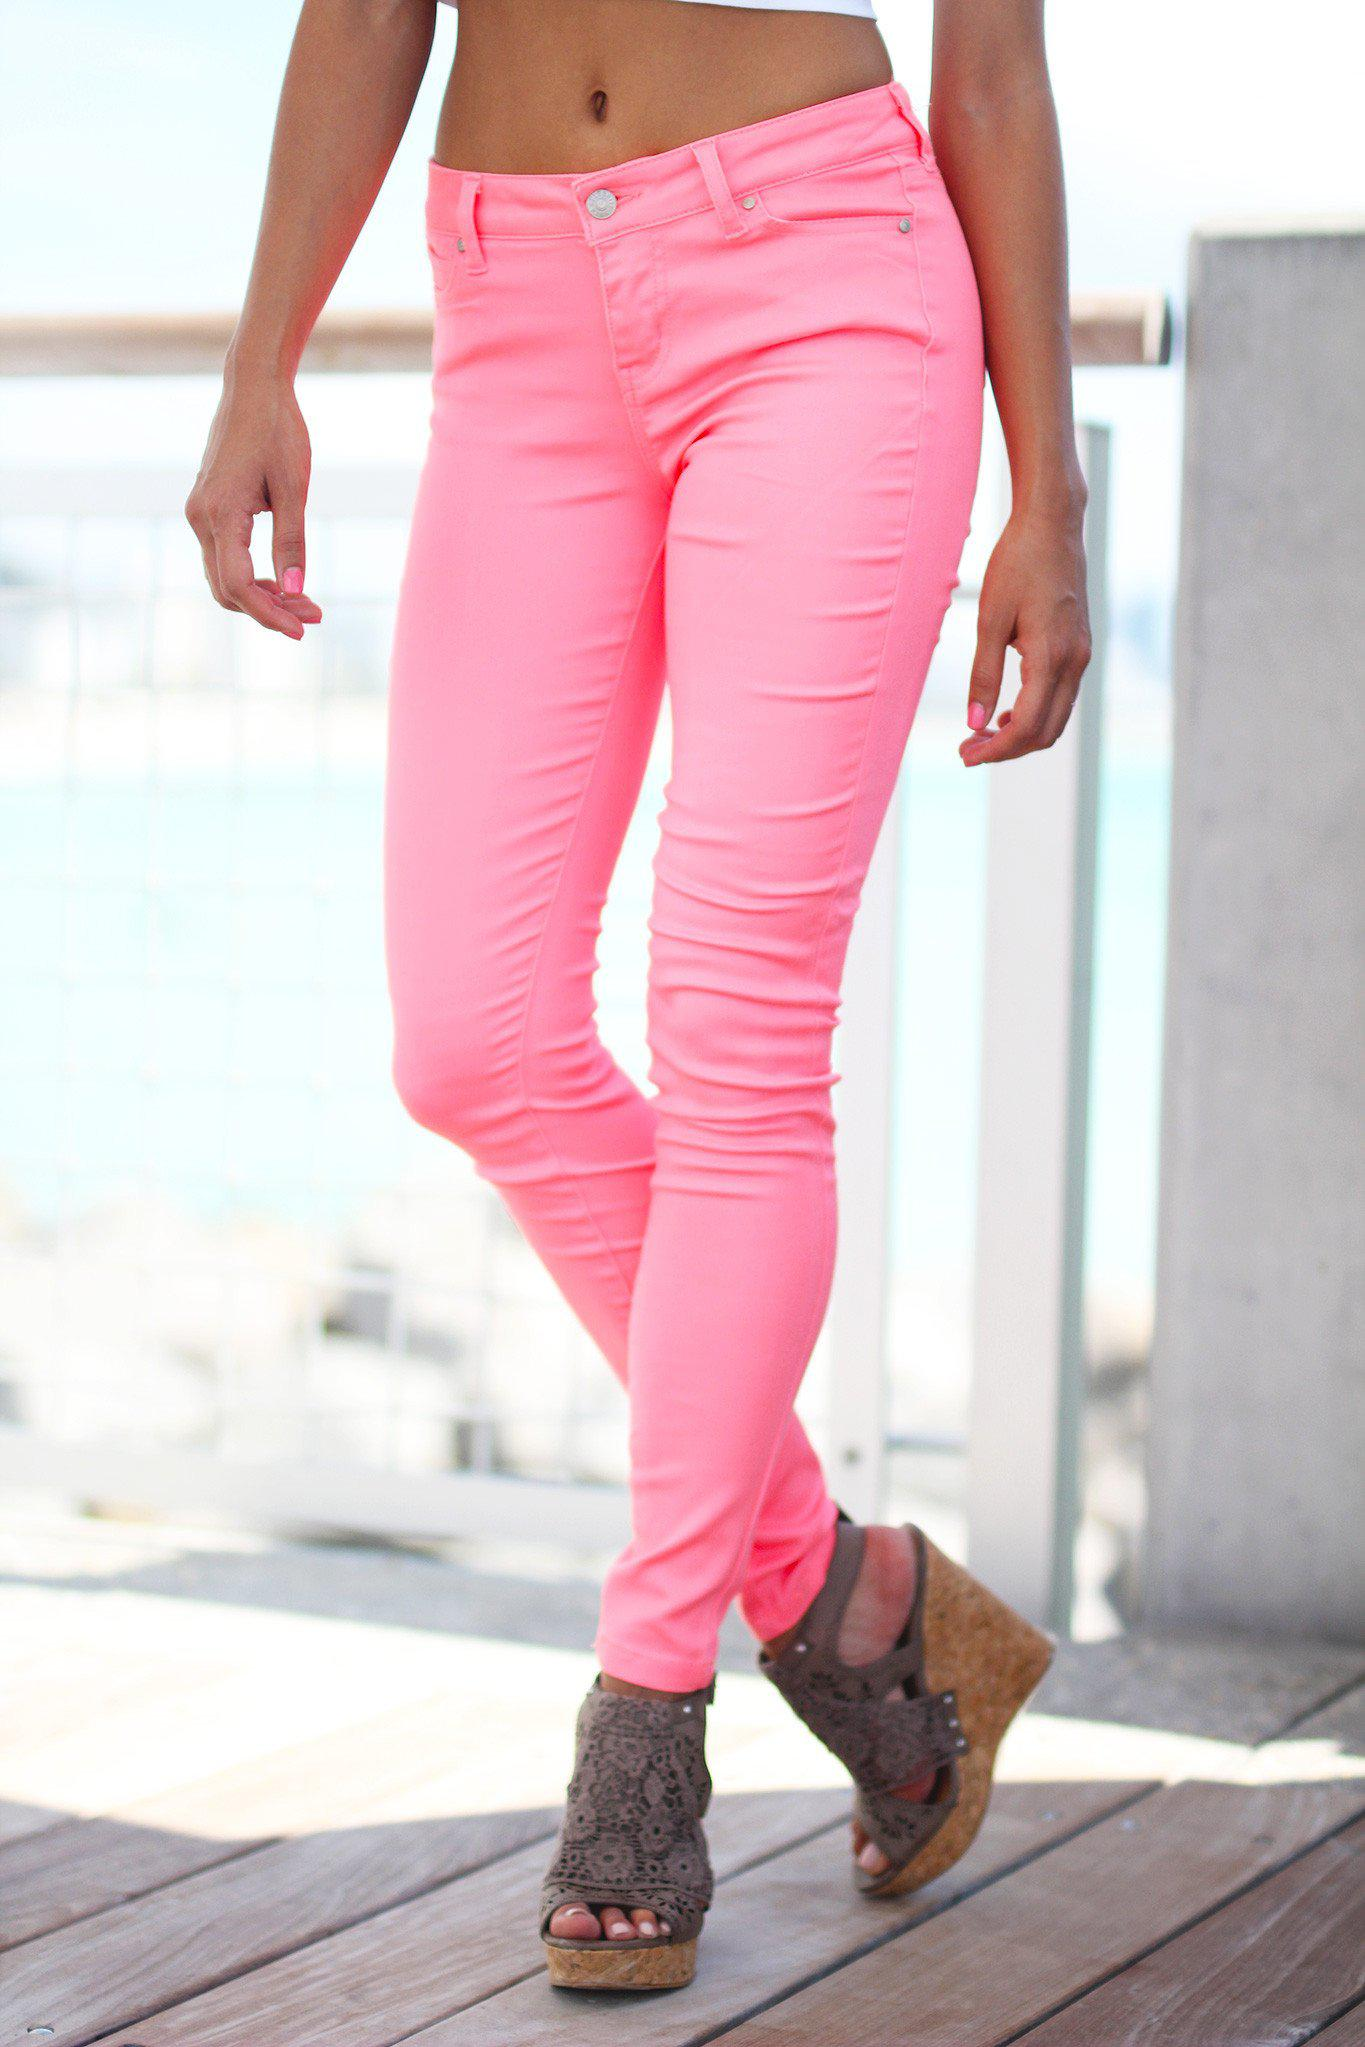 Pink Neon skinny jeans